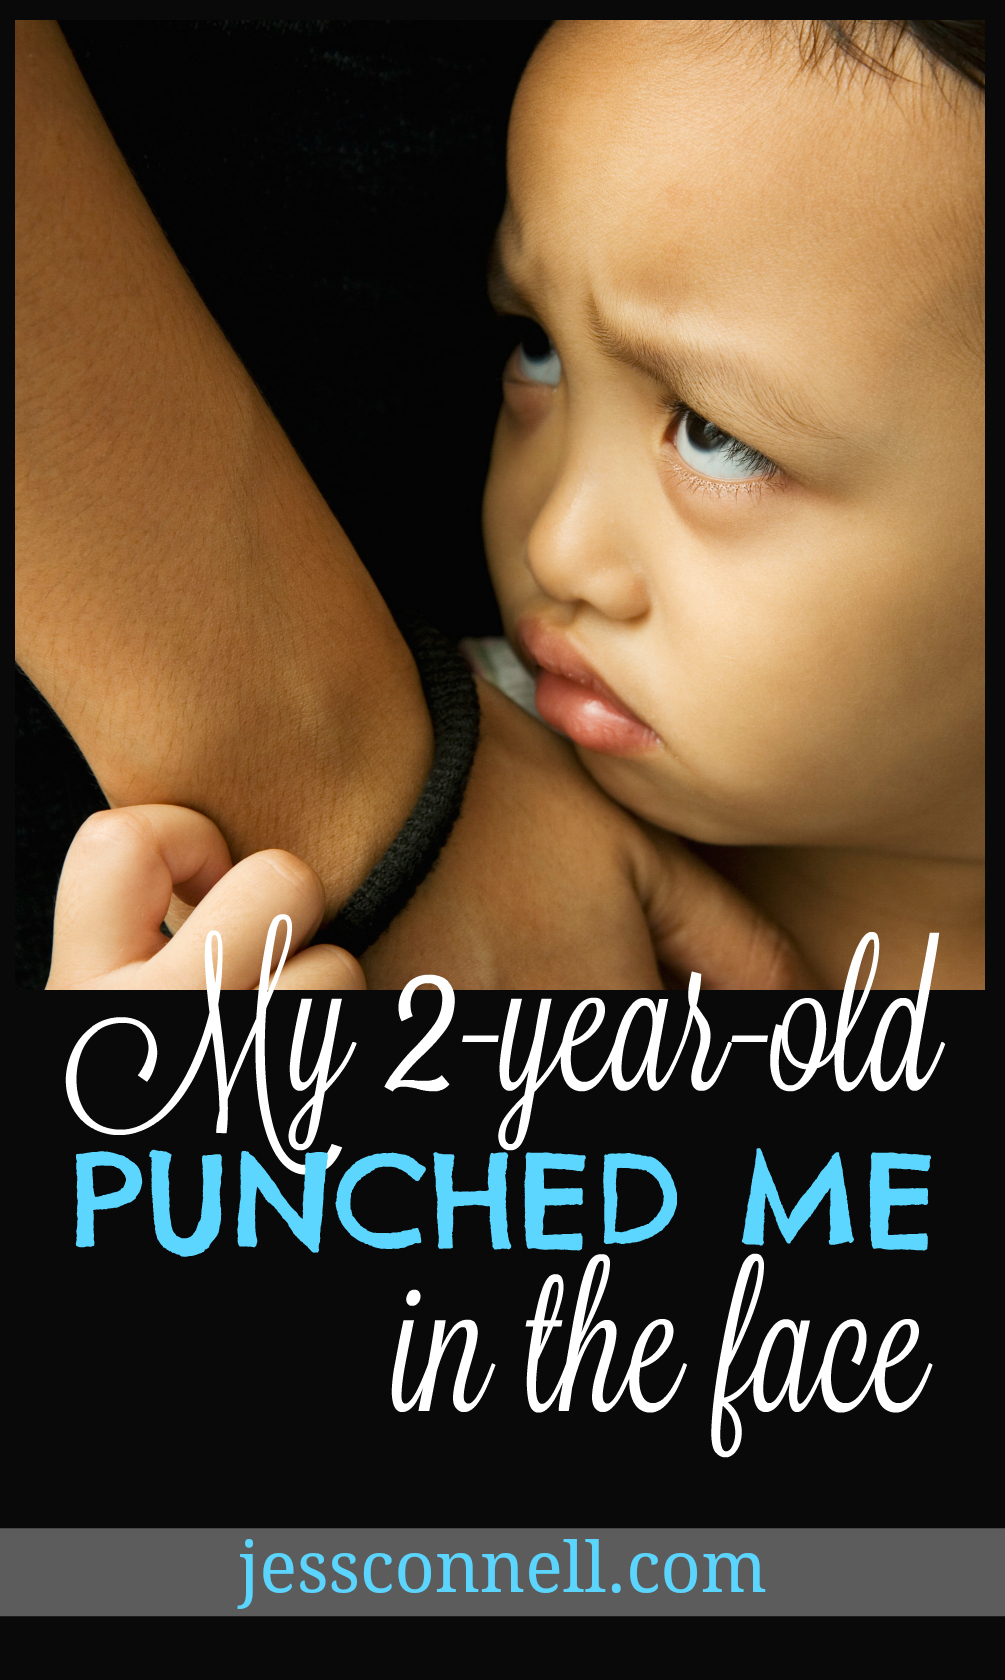 My 2-Year-Old PUNCHED ME in the Face // jessconnell.com